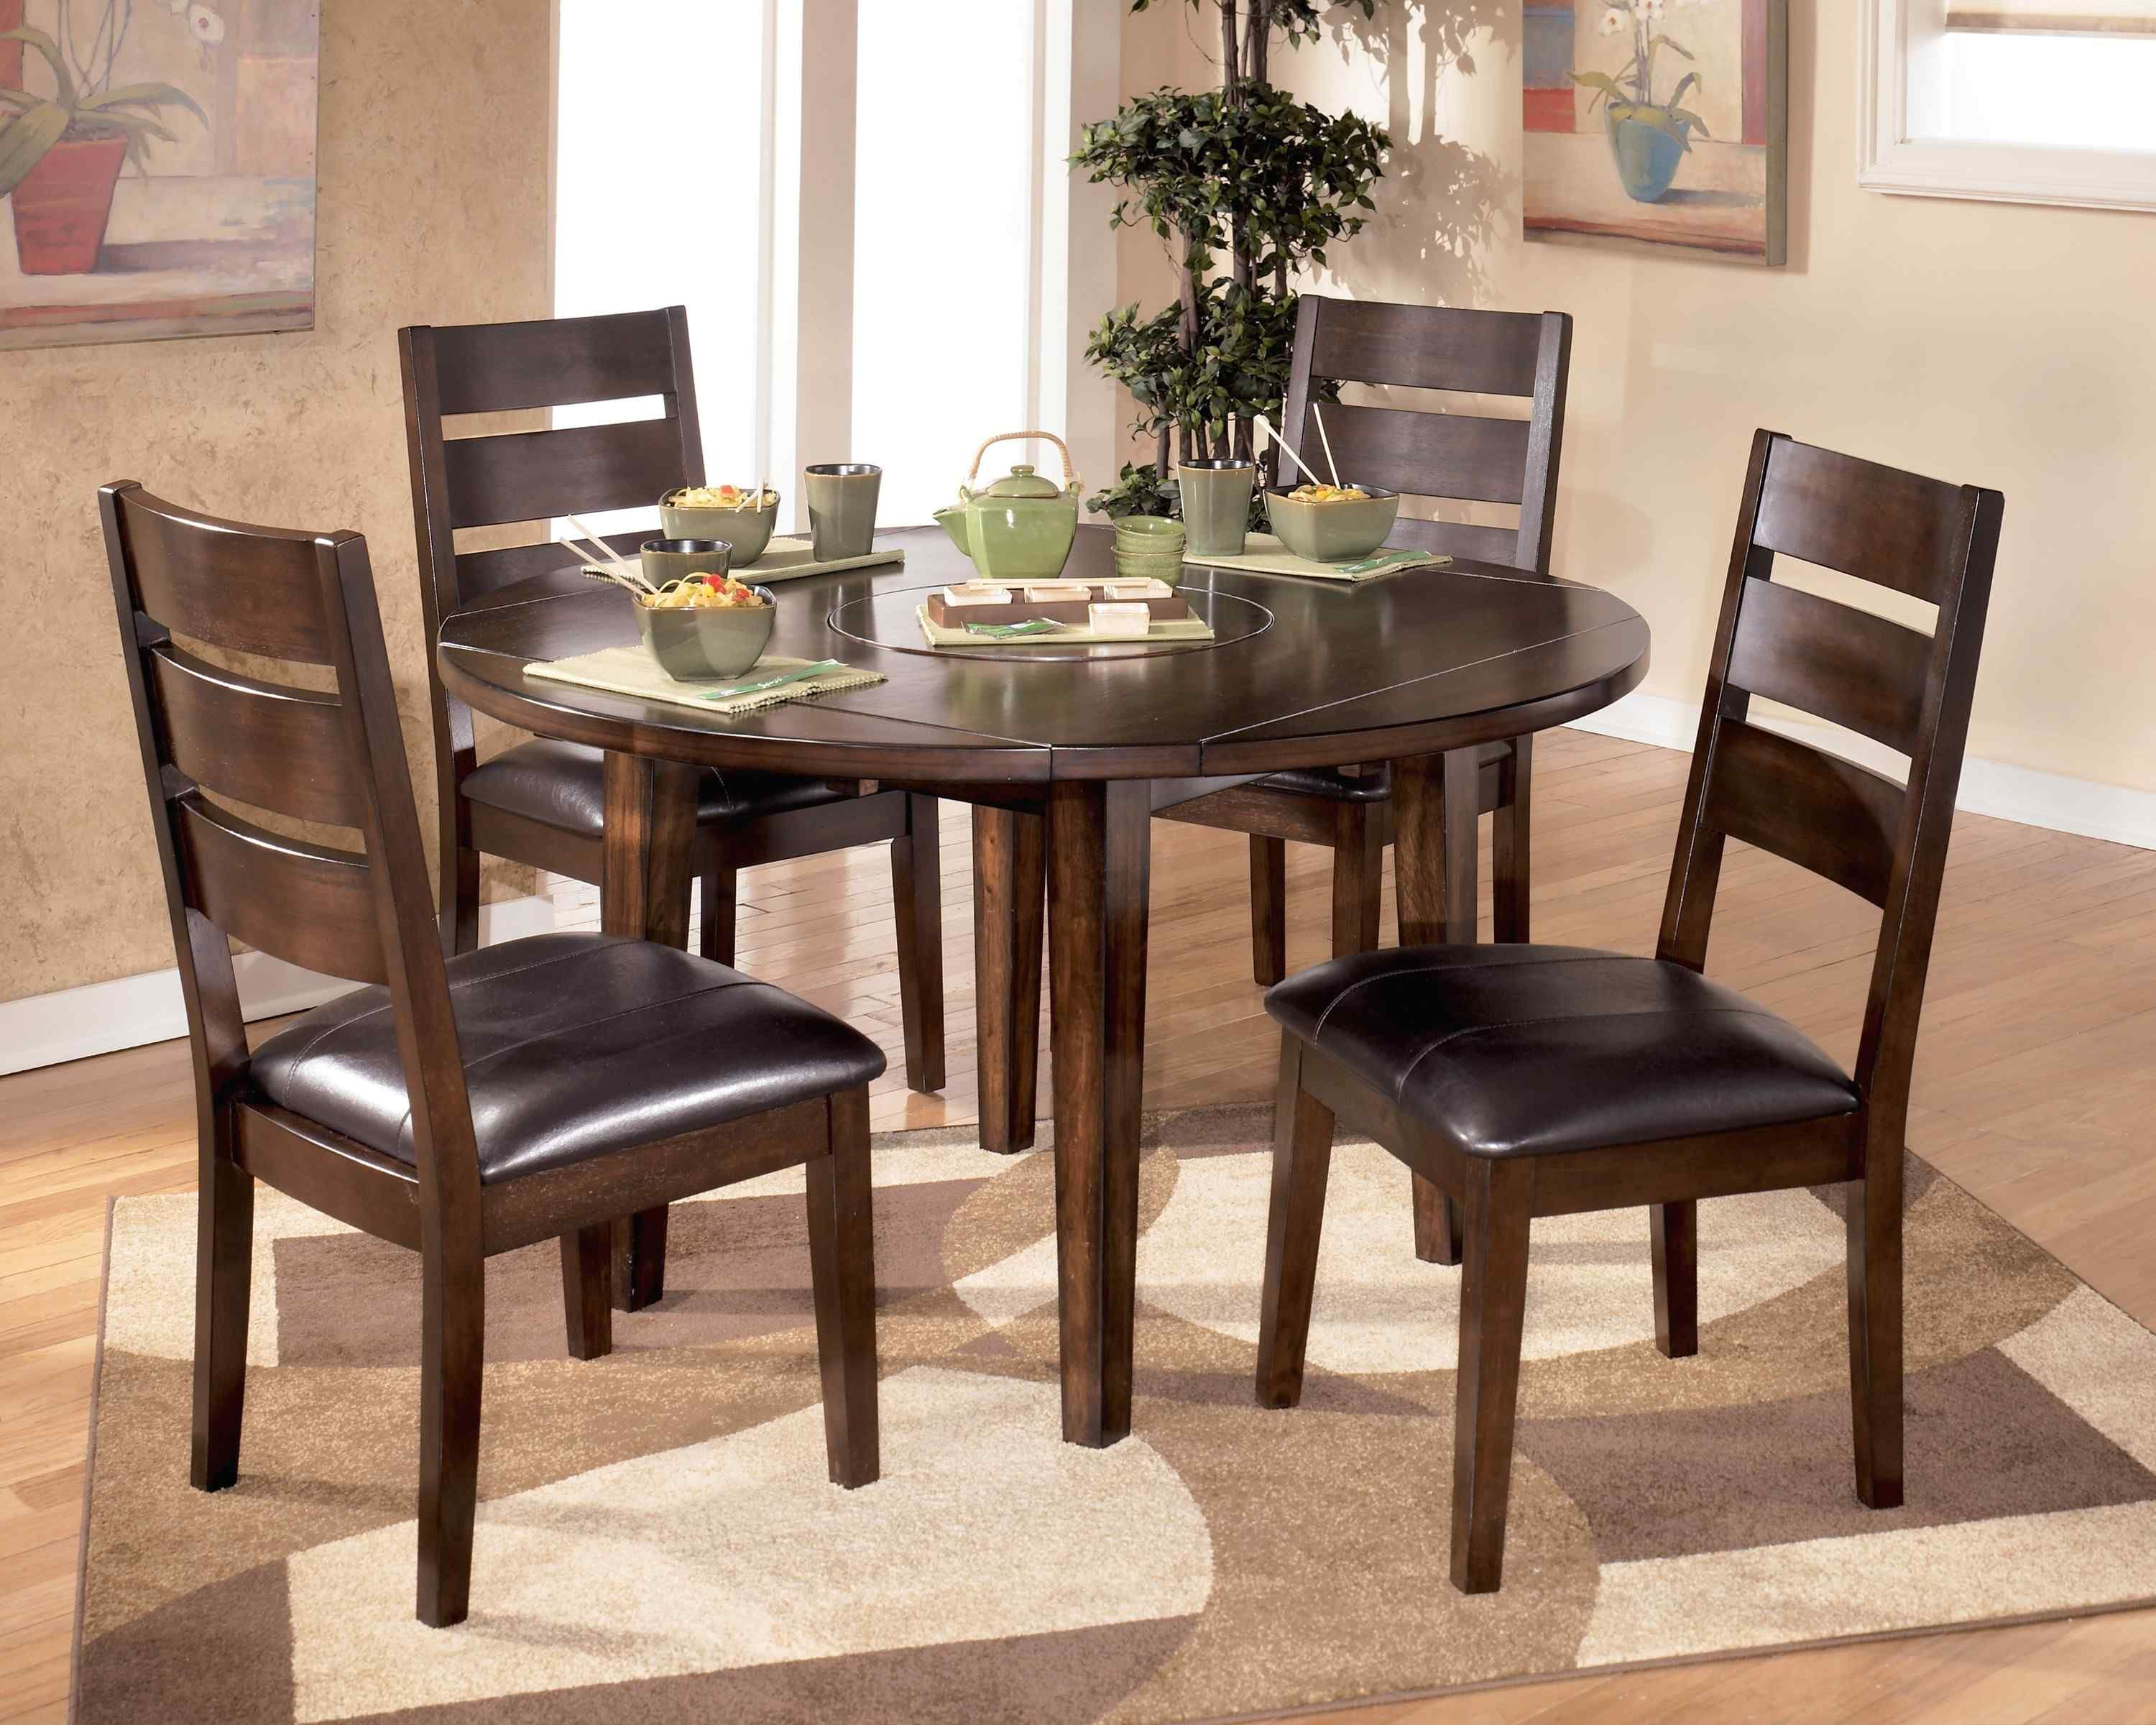 Dining Room Table Centerpiece Ideas Everyday Simple Best Of Dining Room Table C Unusual Dining Room Furniture Round Dining Room Table Round Dining Table Sets